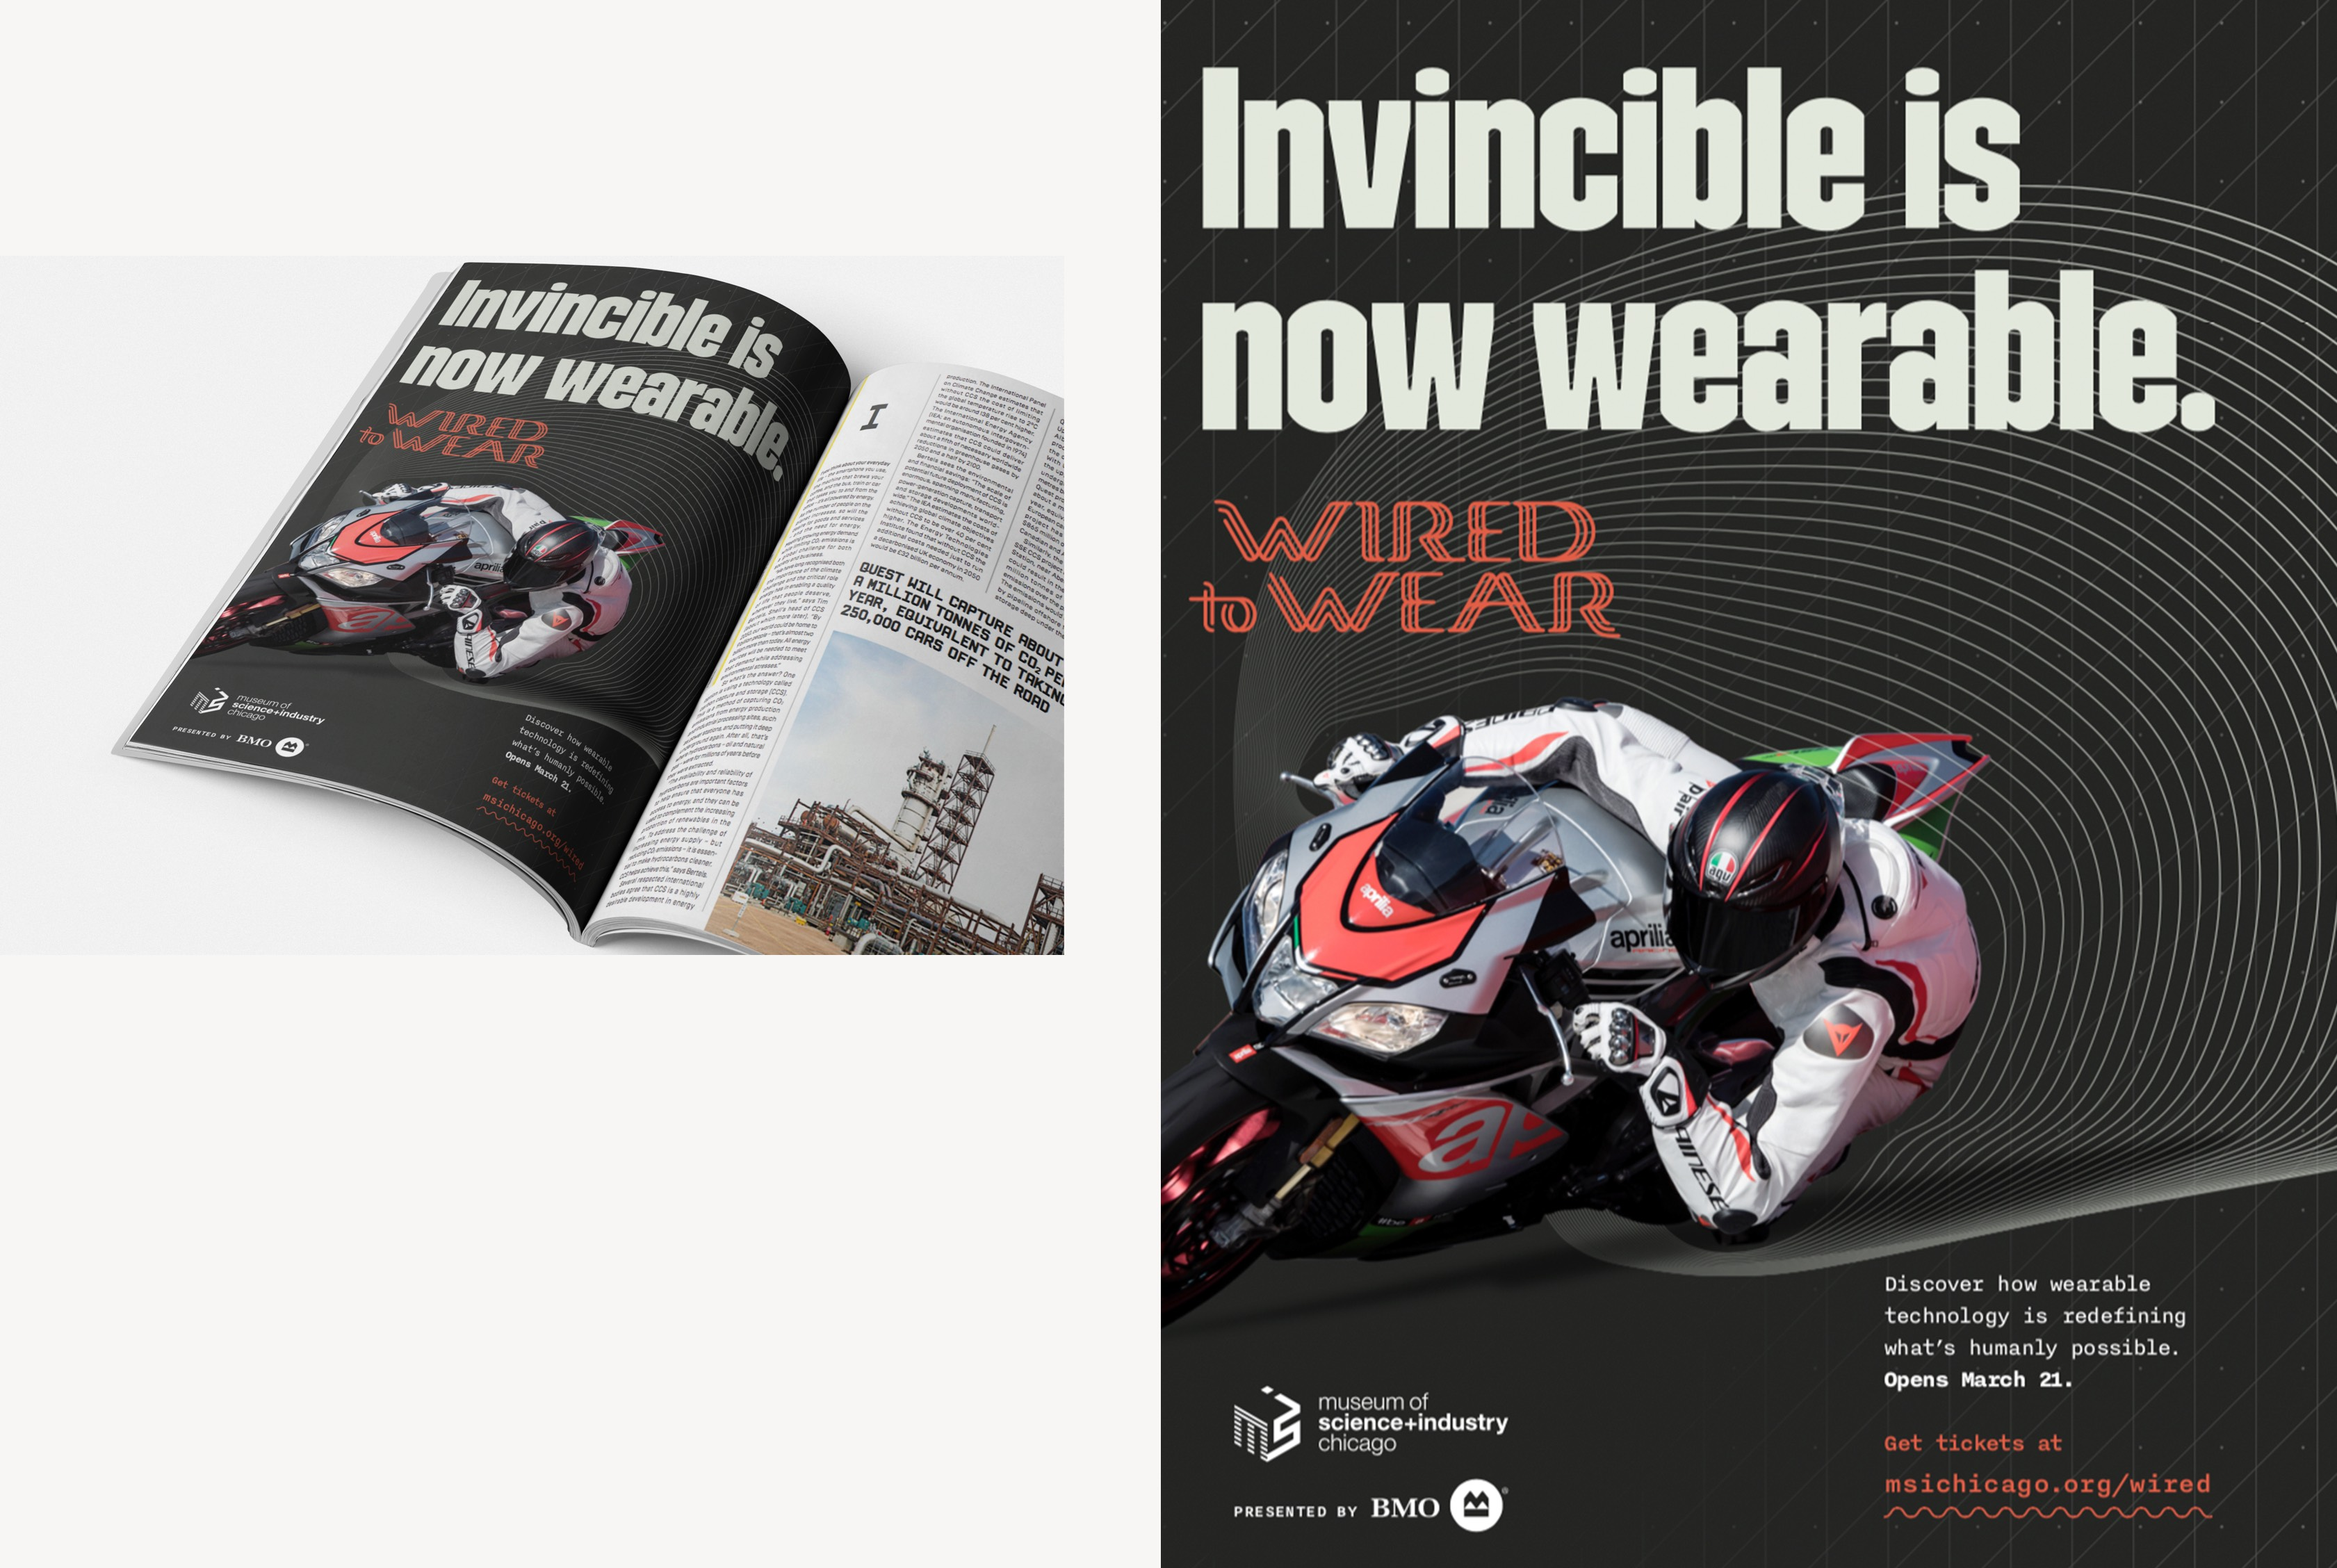 Print advertising for Wired to Wear exhibit, showing a motorcycle rider wearing smart armor.